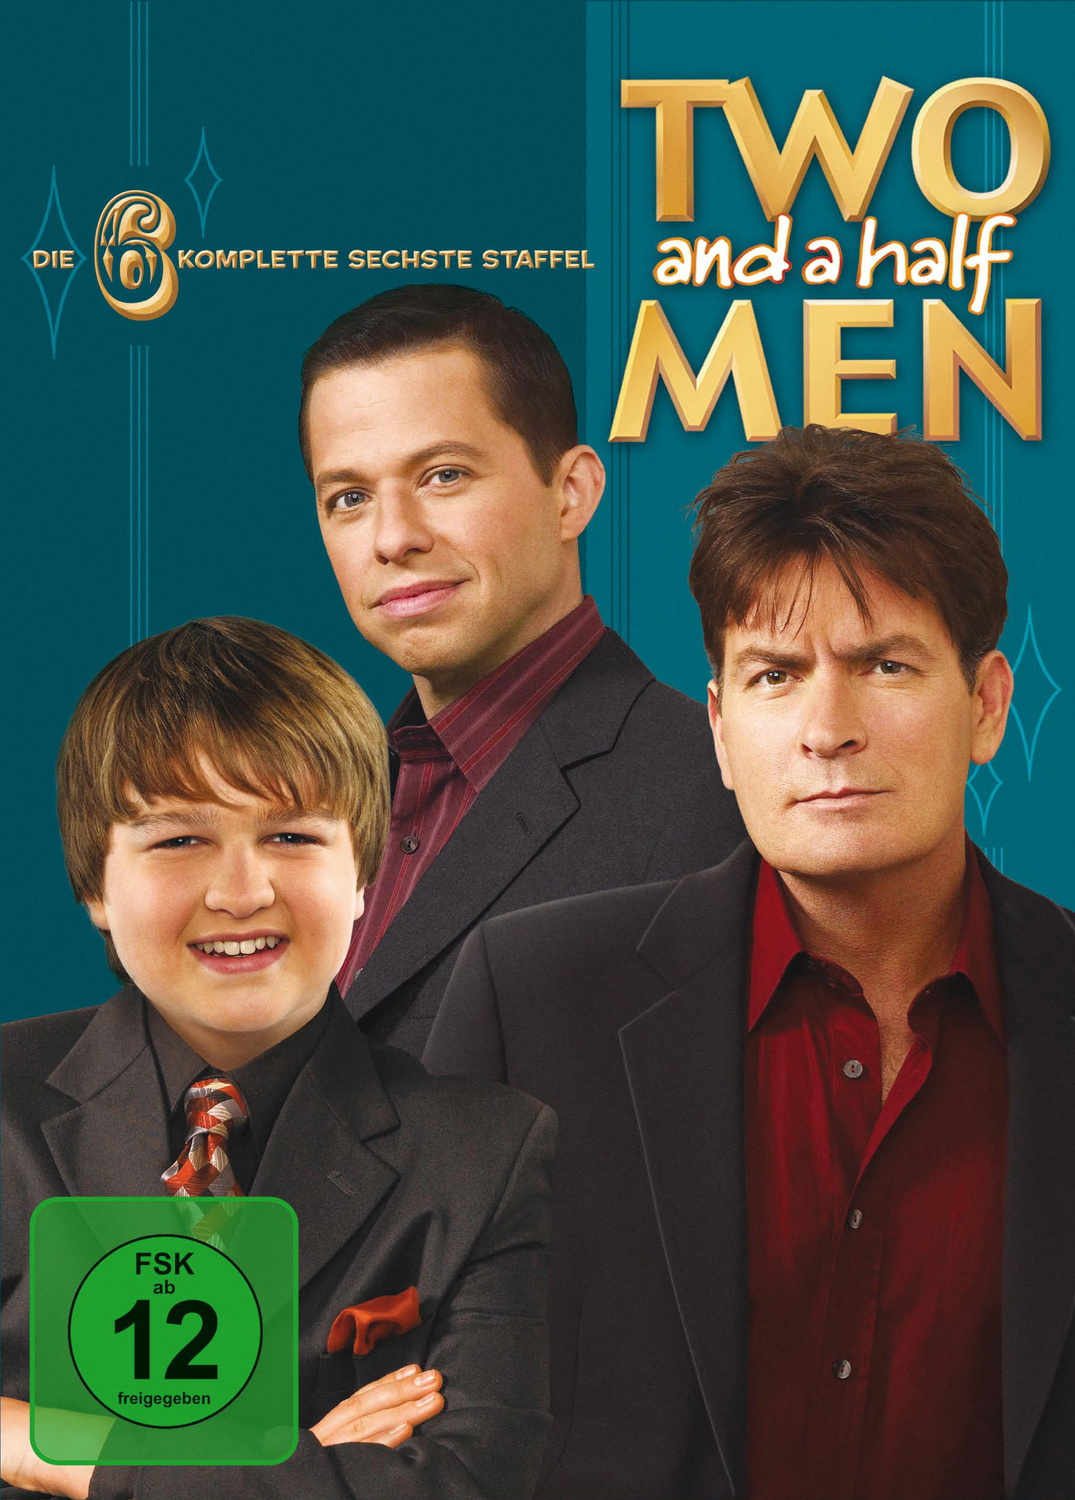 Two and a half Men - Staffel 6